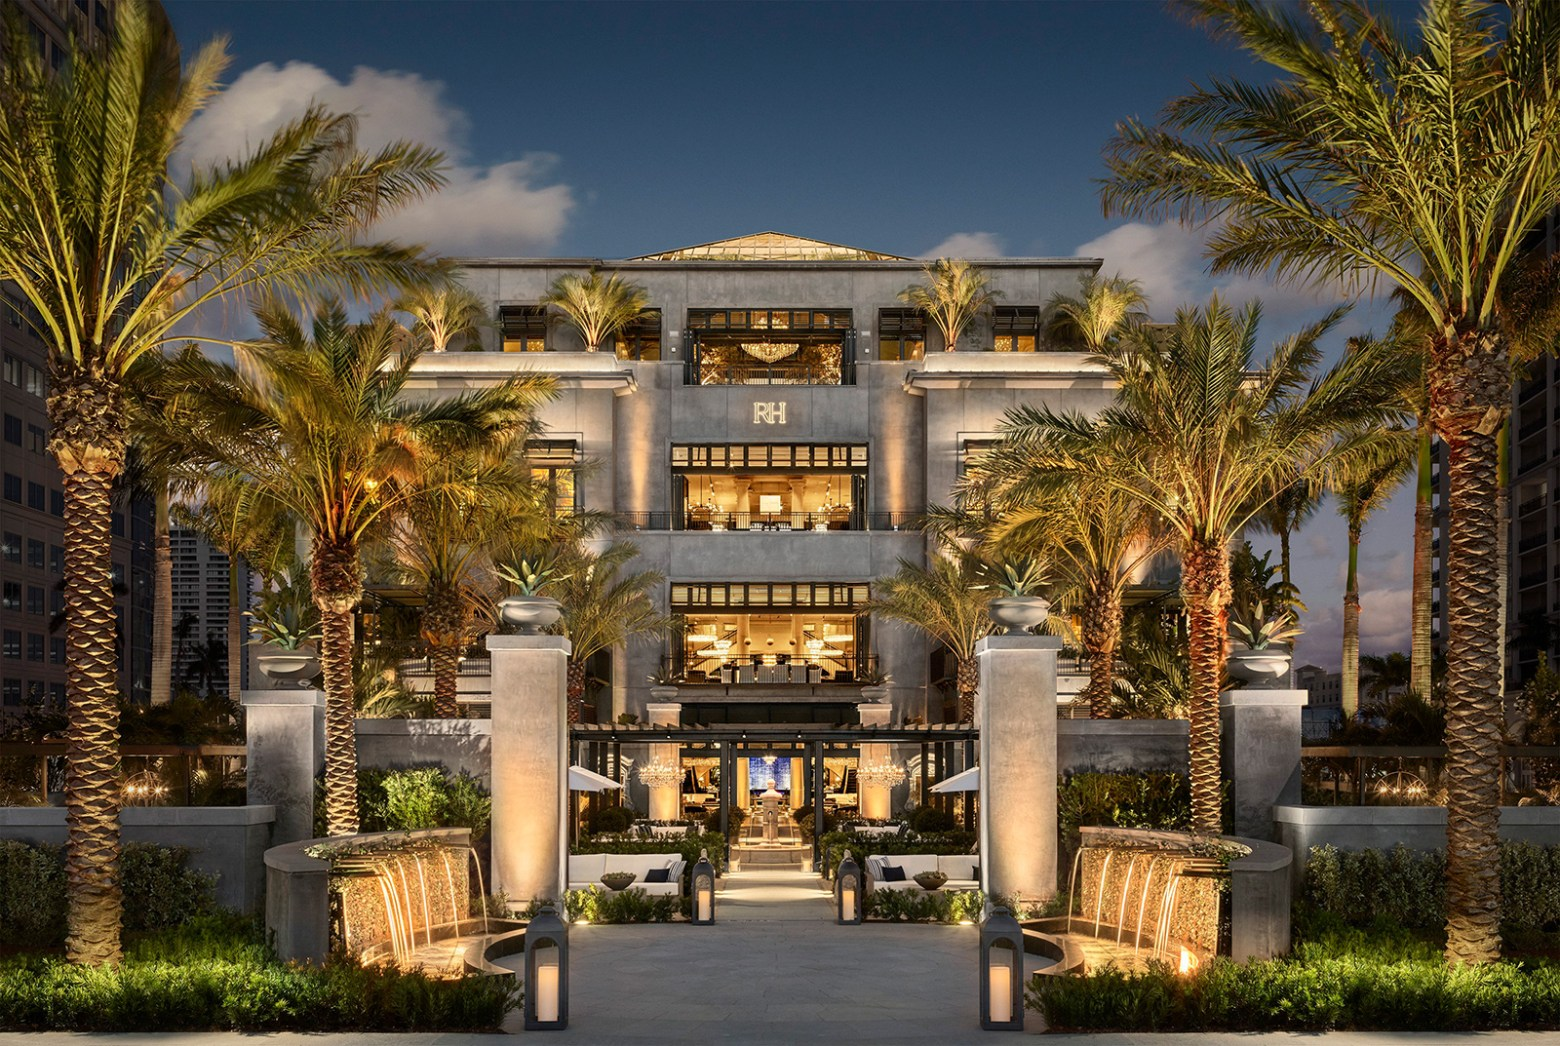 Restoration Hardware West Palm Beach Exterior